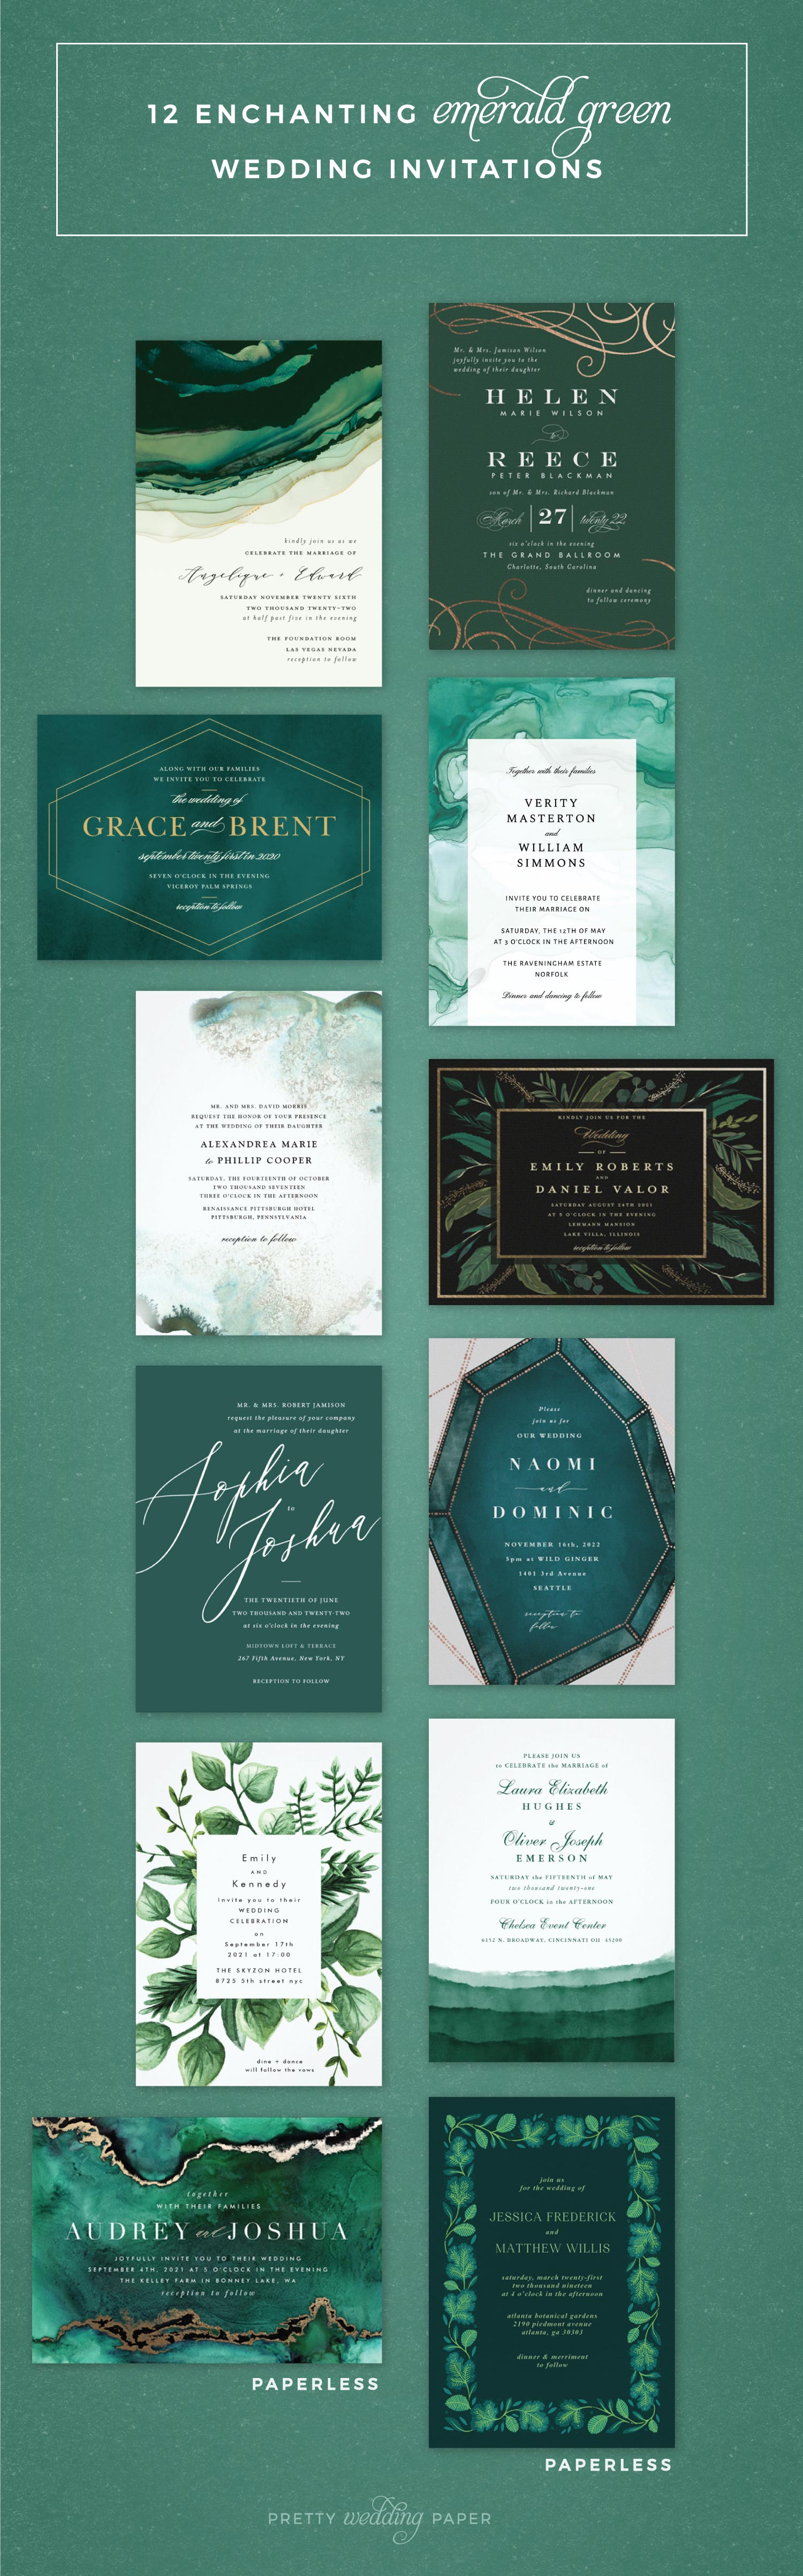 12 Enchanting Emerald Green Wedding Invitations